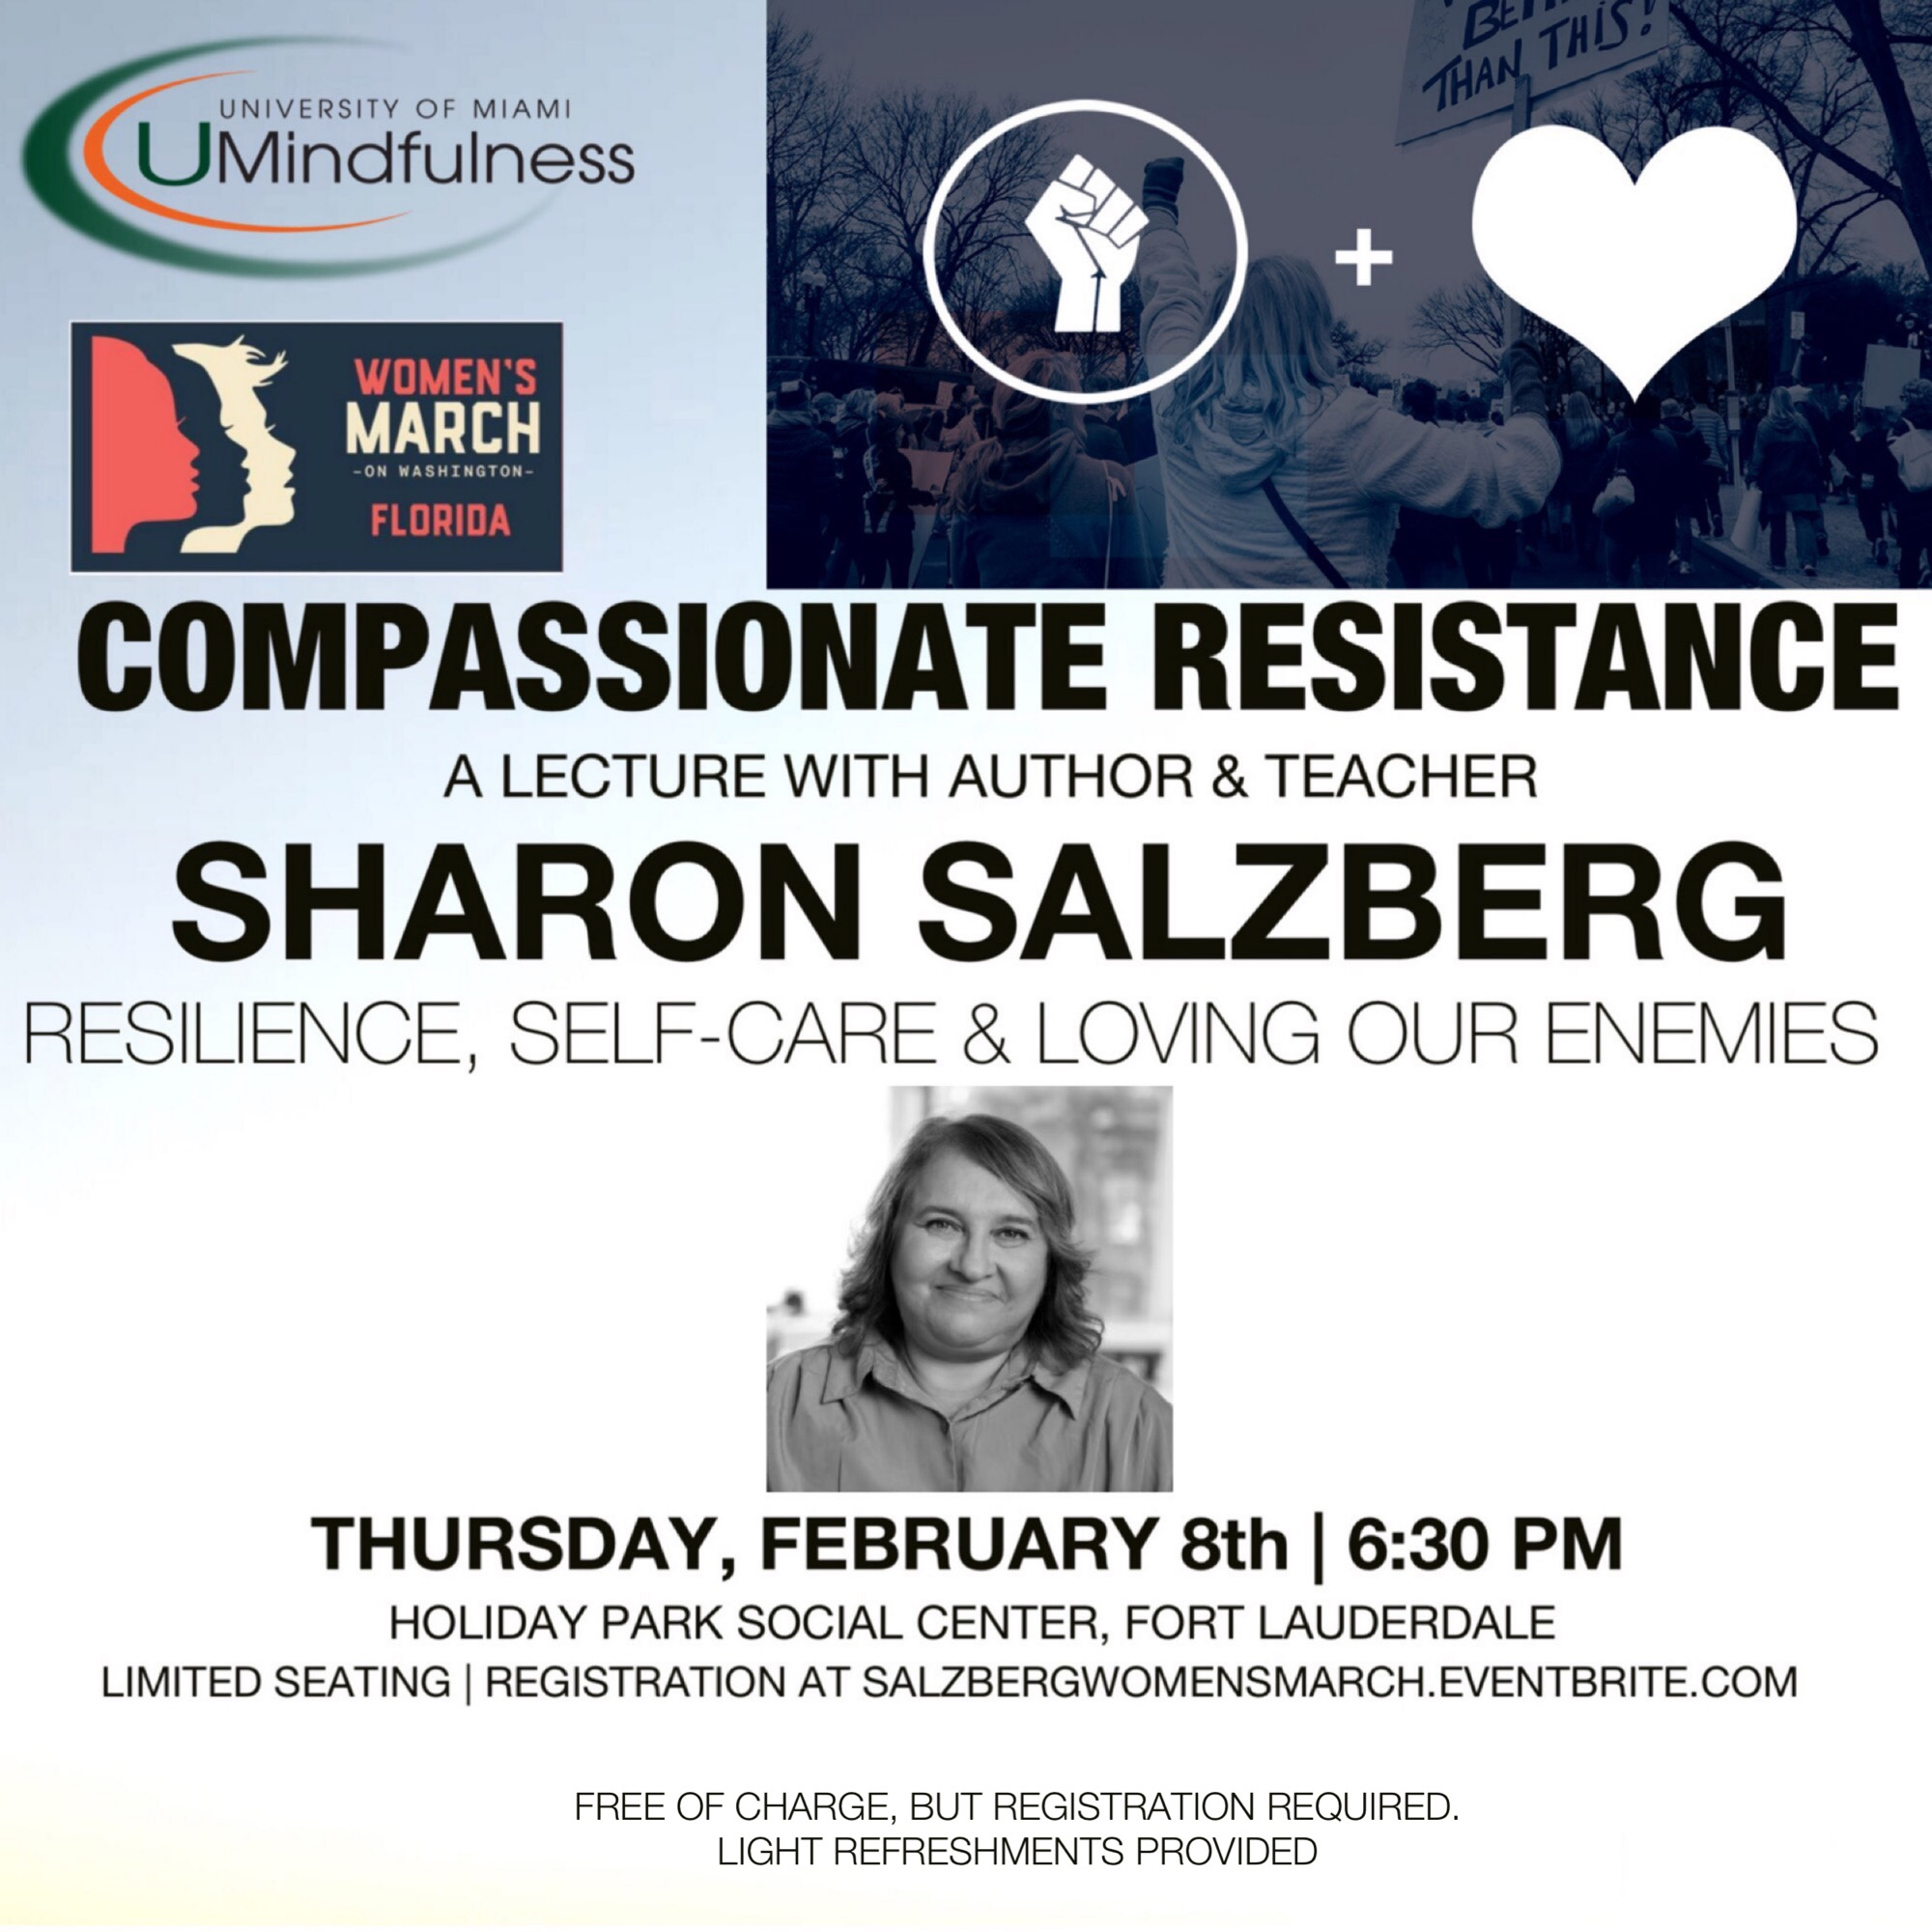 Compassionate Resistance: A lecture with Sharon Salzberg